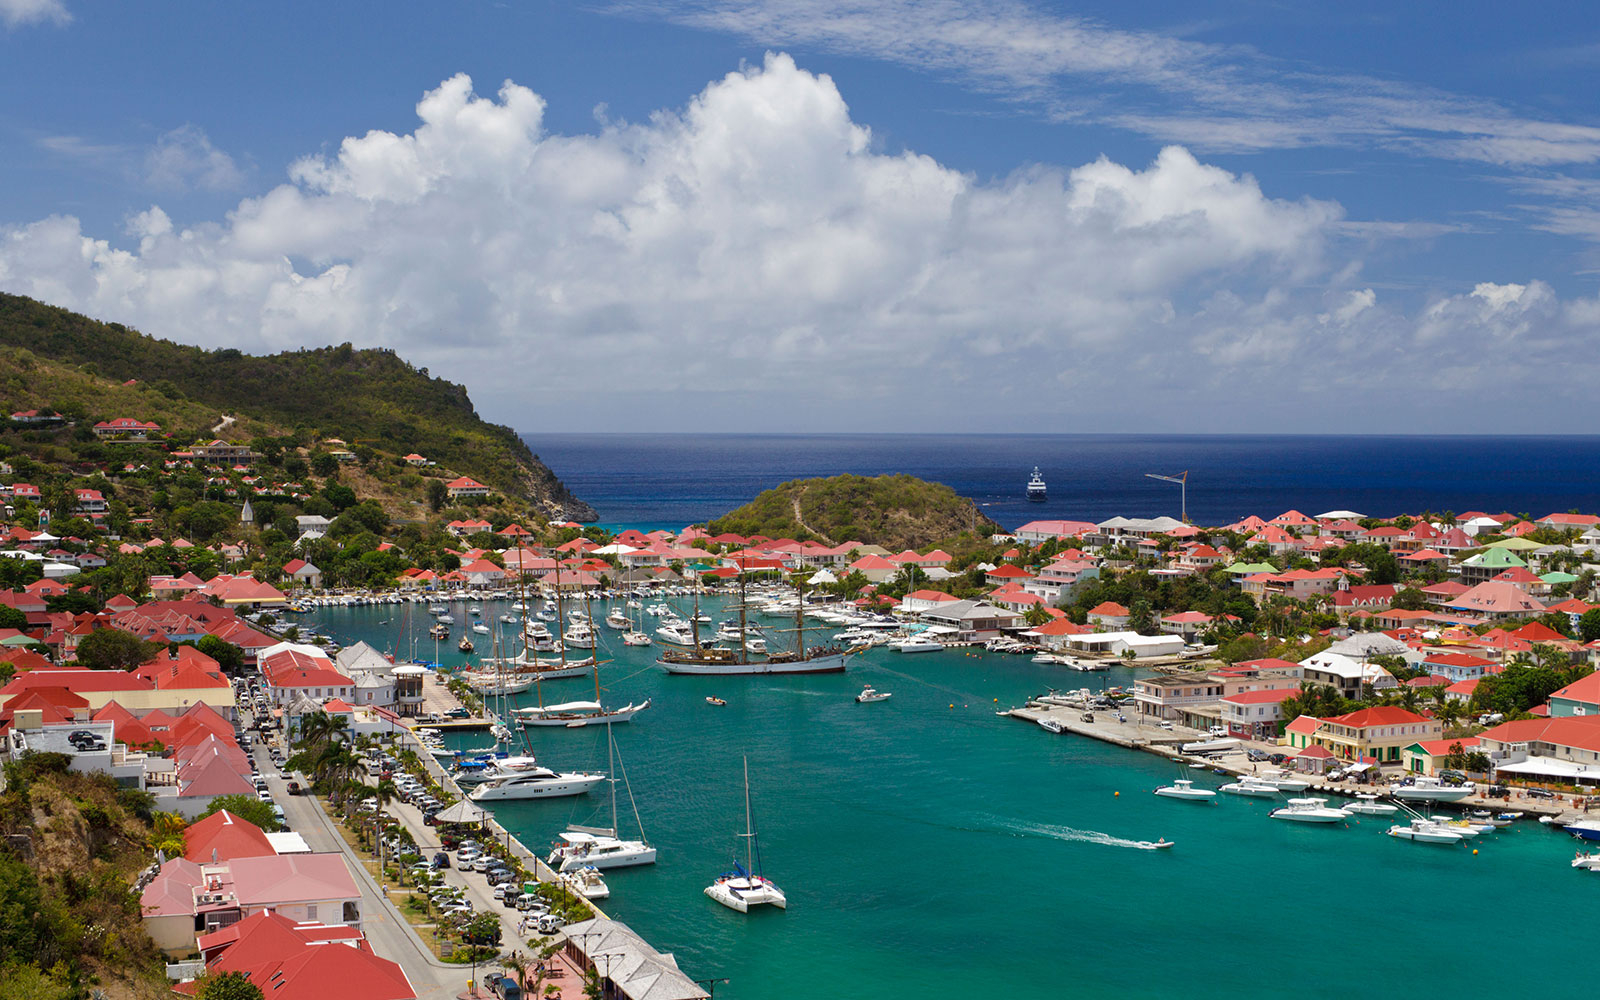 Go to st. barts date added 6/21/17